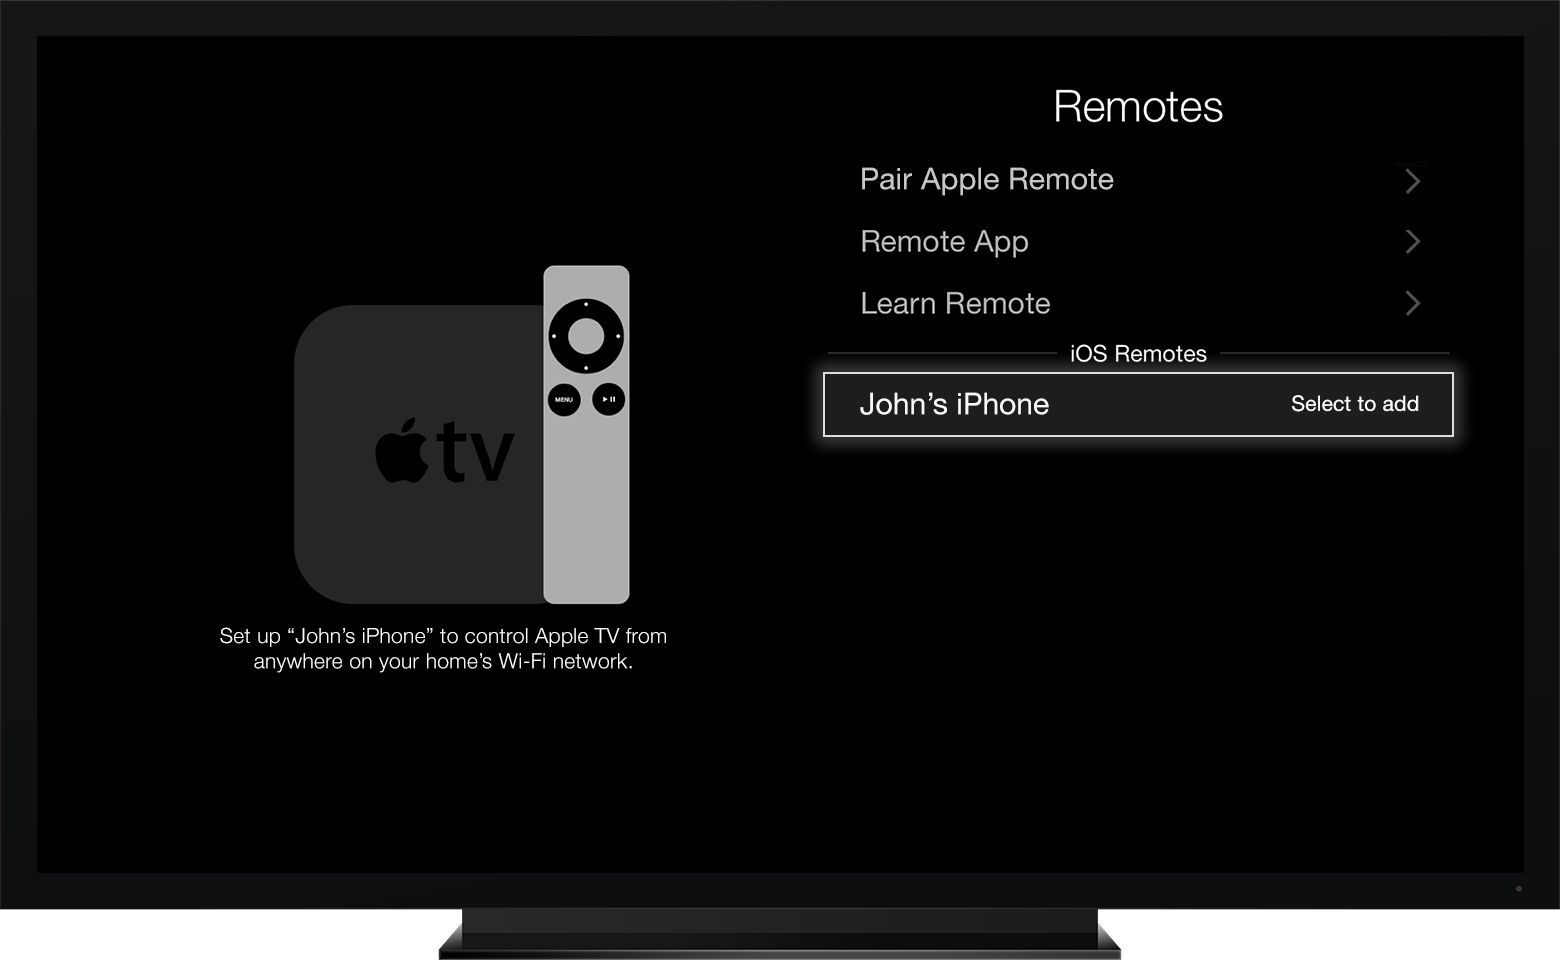 The Remote app in the Settings menu on Apple TV (2nd or